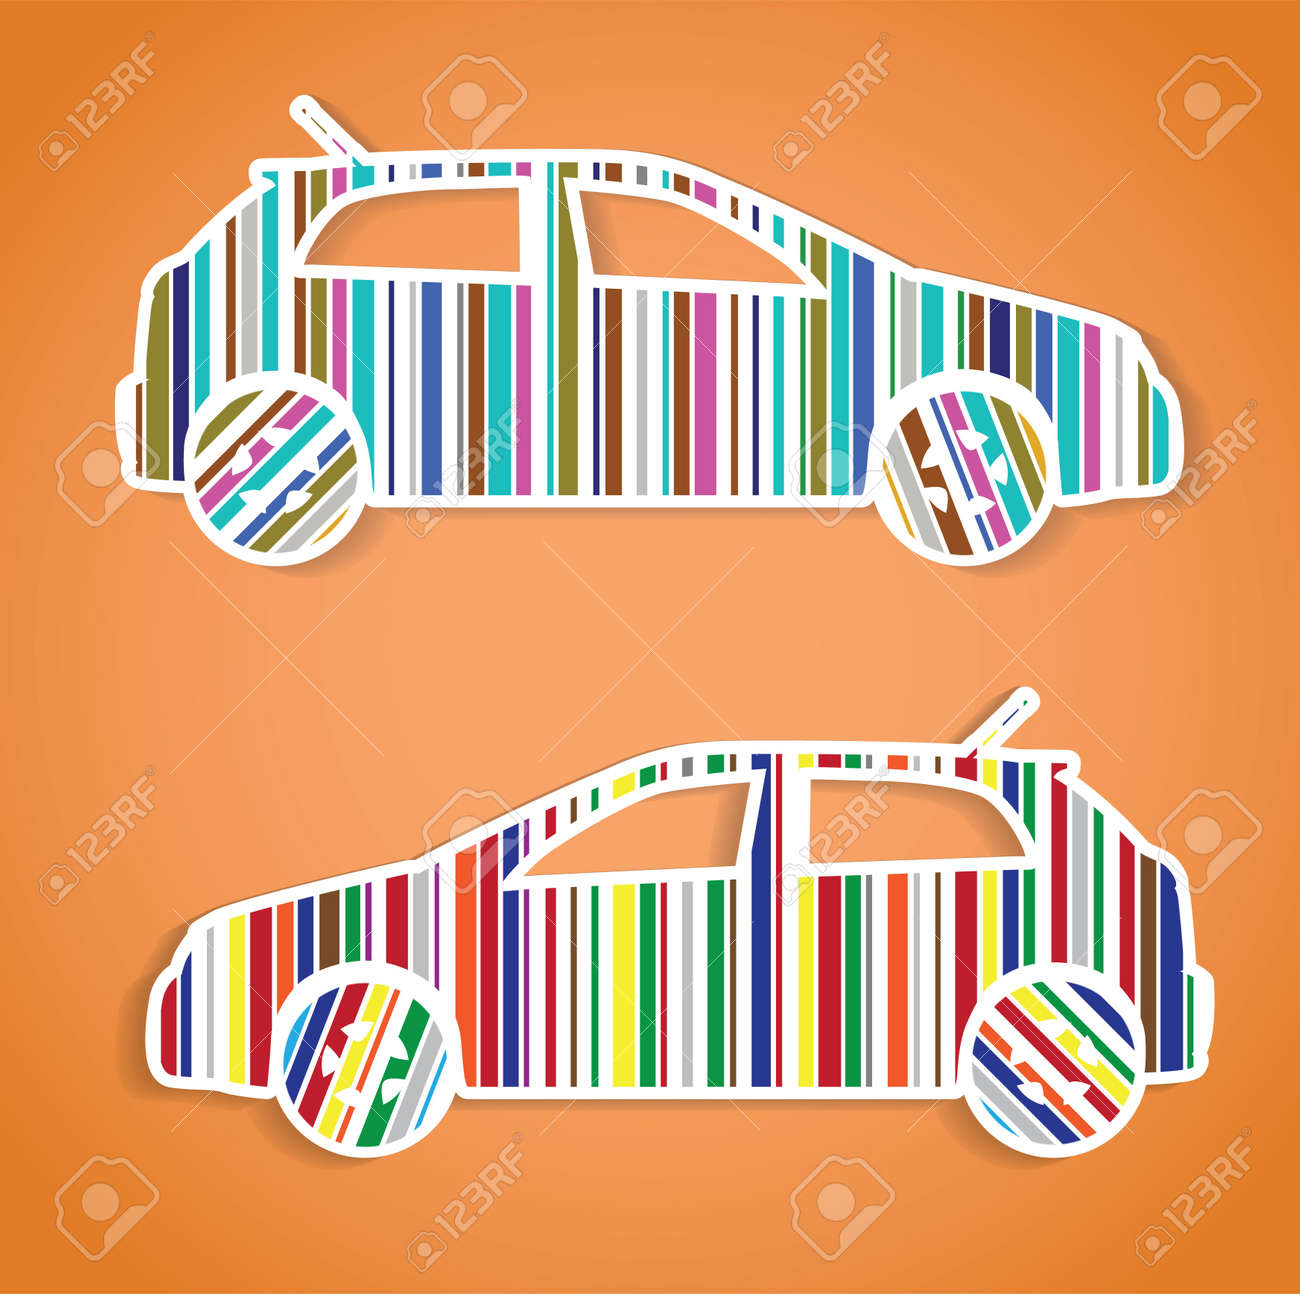 cars as color barcode, isolated illustration Stock Vector - 17181550